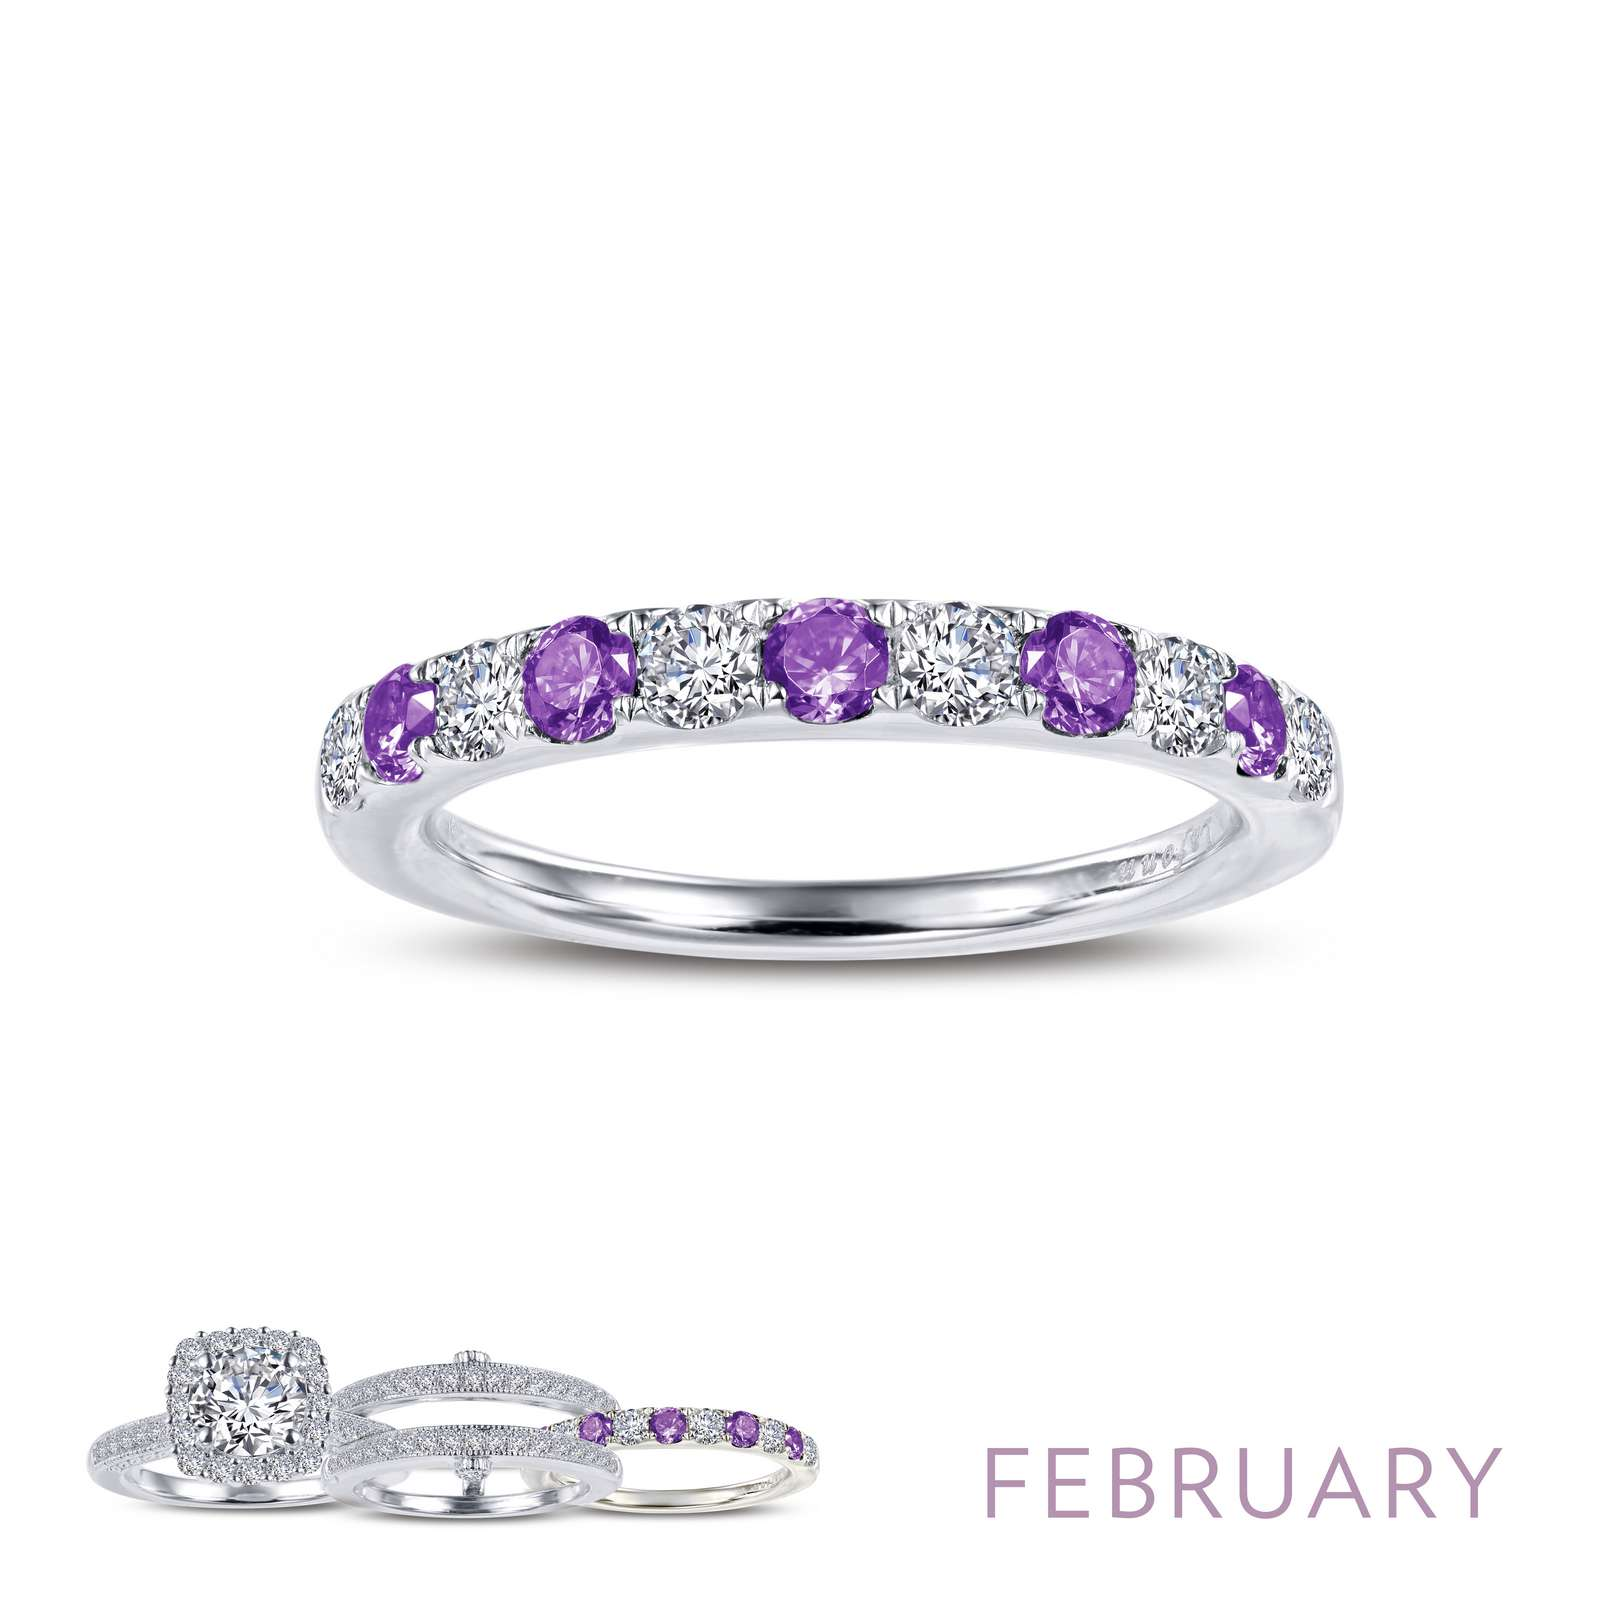 Birthstone FEBRUARY Platinum Ring - February - Amethyst. This half eternity band is set with Lafonn's signature Lassaire simulated diamonds and simulated amethsyts in sterling silver bonded with platinum. Wear it by itself or stack with other rings.